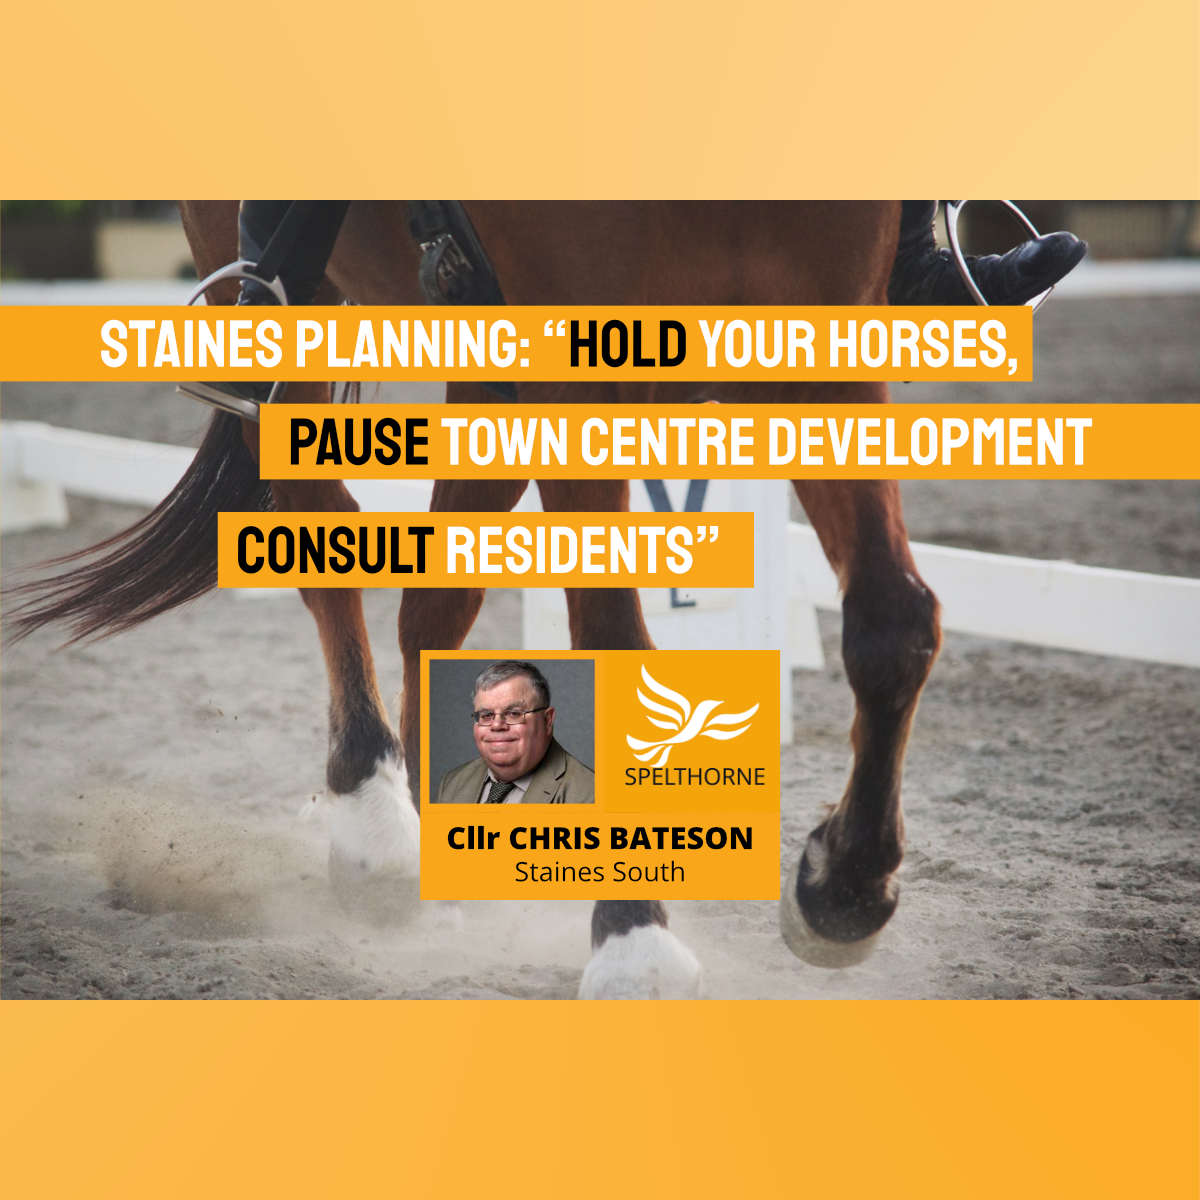 Spelthorne Liberal Democrats Staines Plan Motion to Council (Spelthorne Liberal Democrats)